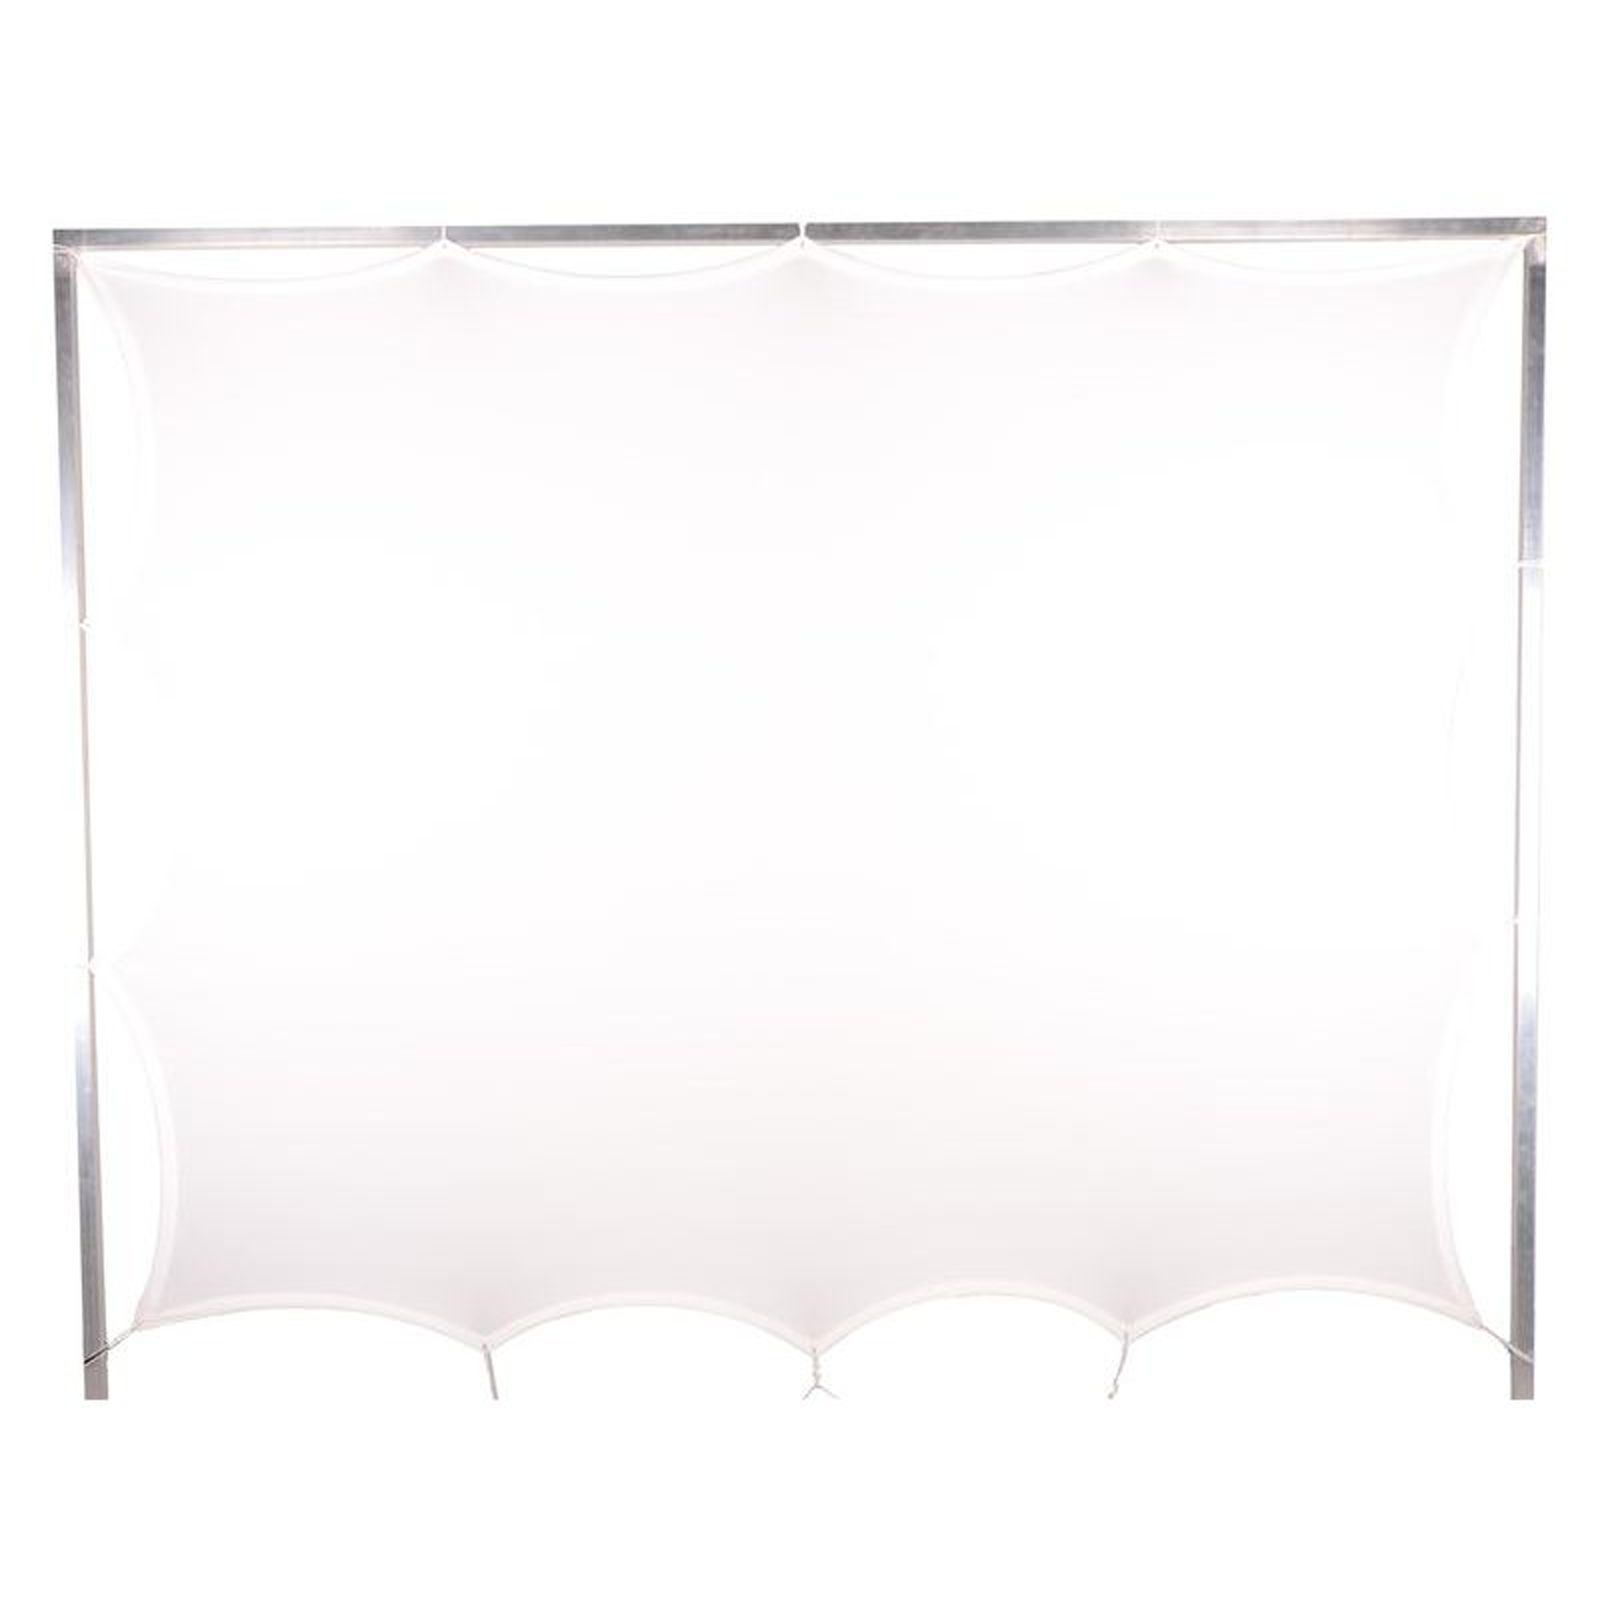 Expand Screen with Fixing Points 0.7m x 1.5m rotateable white Produktbillede